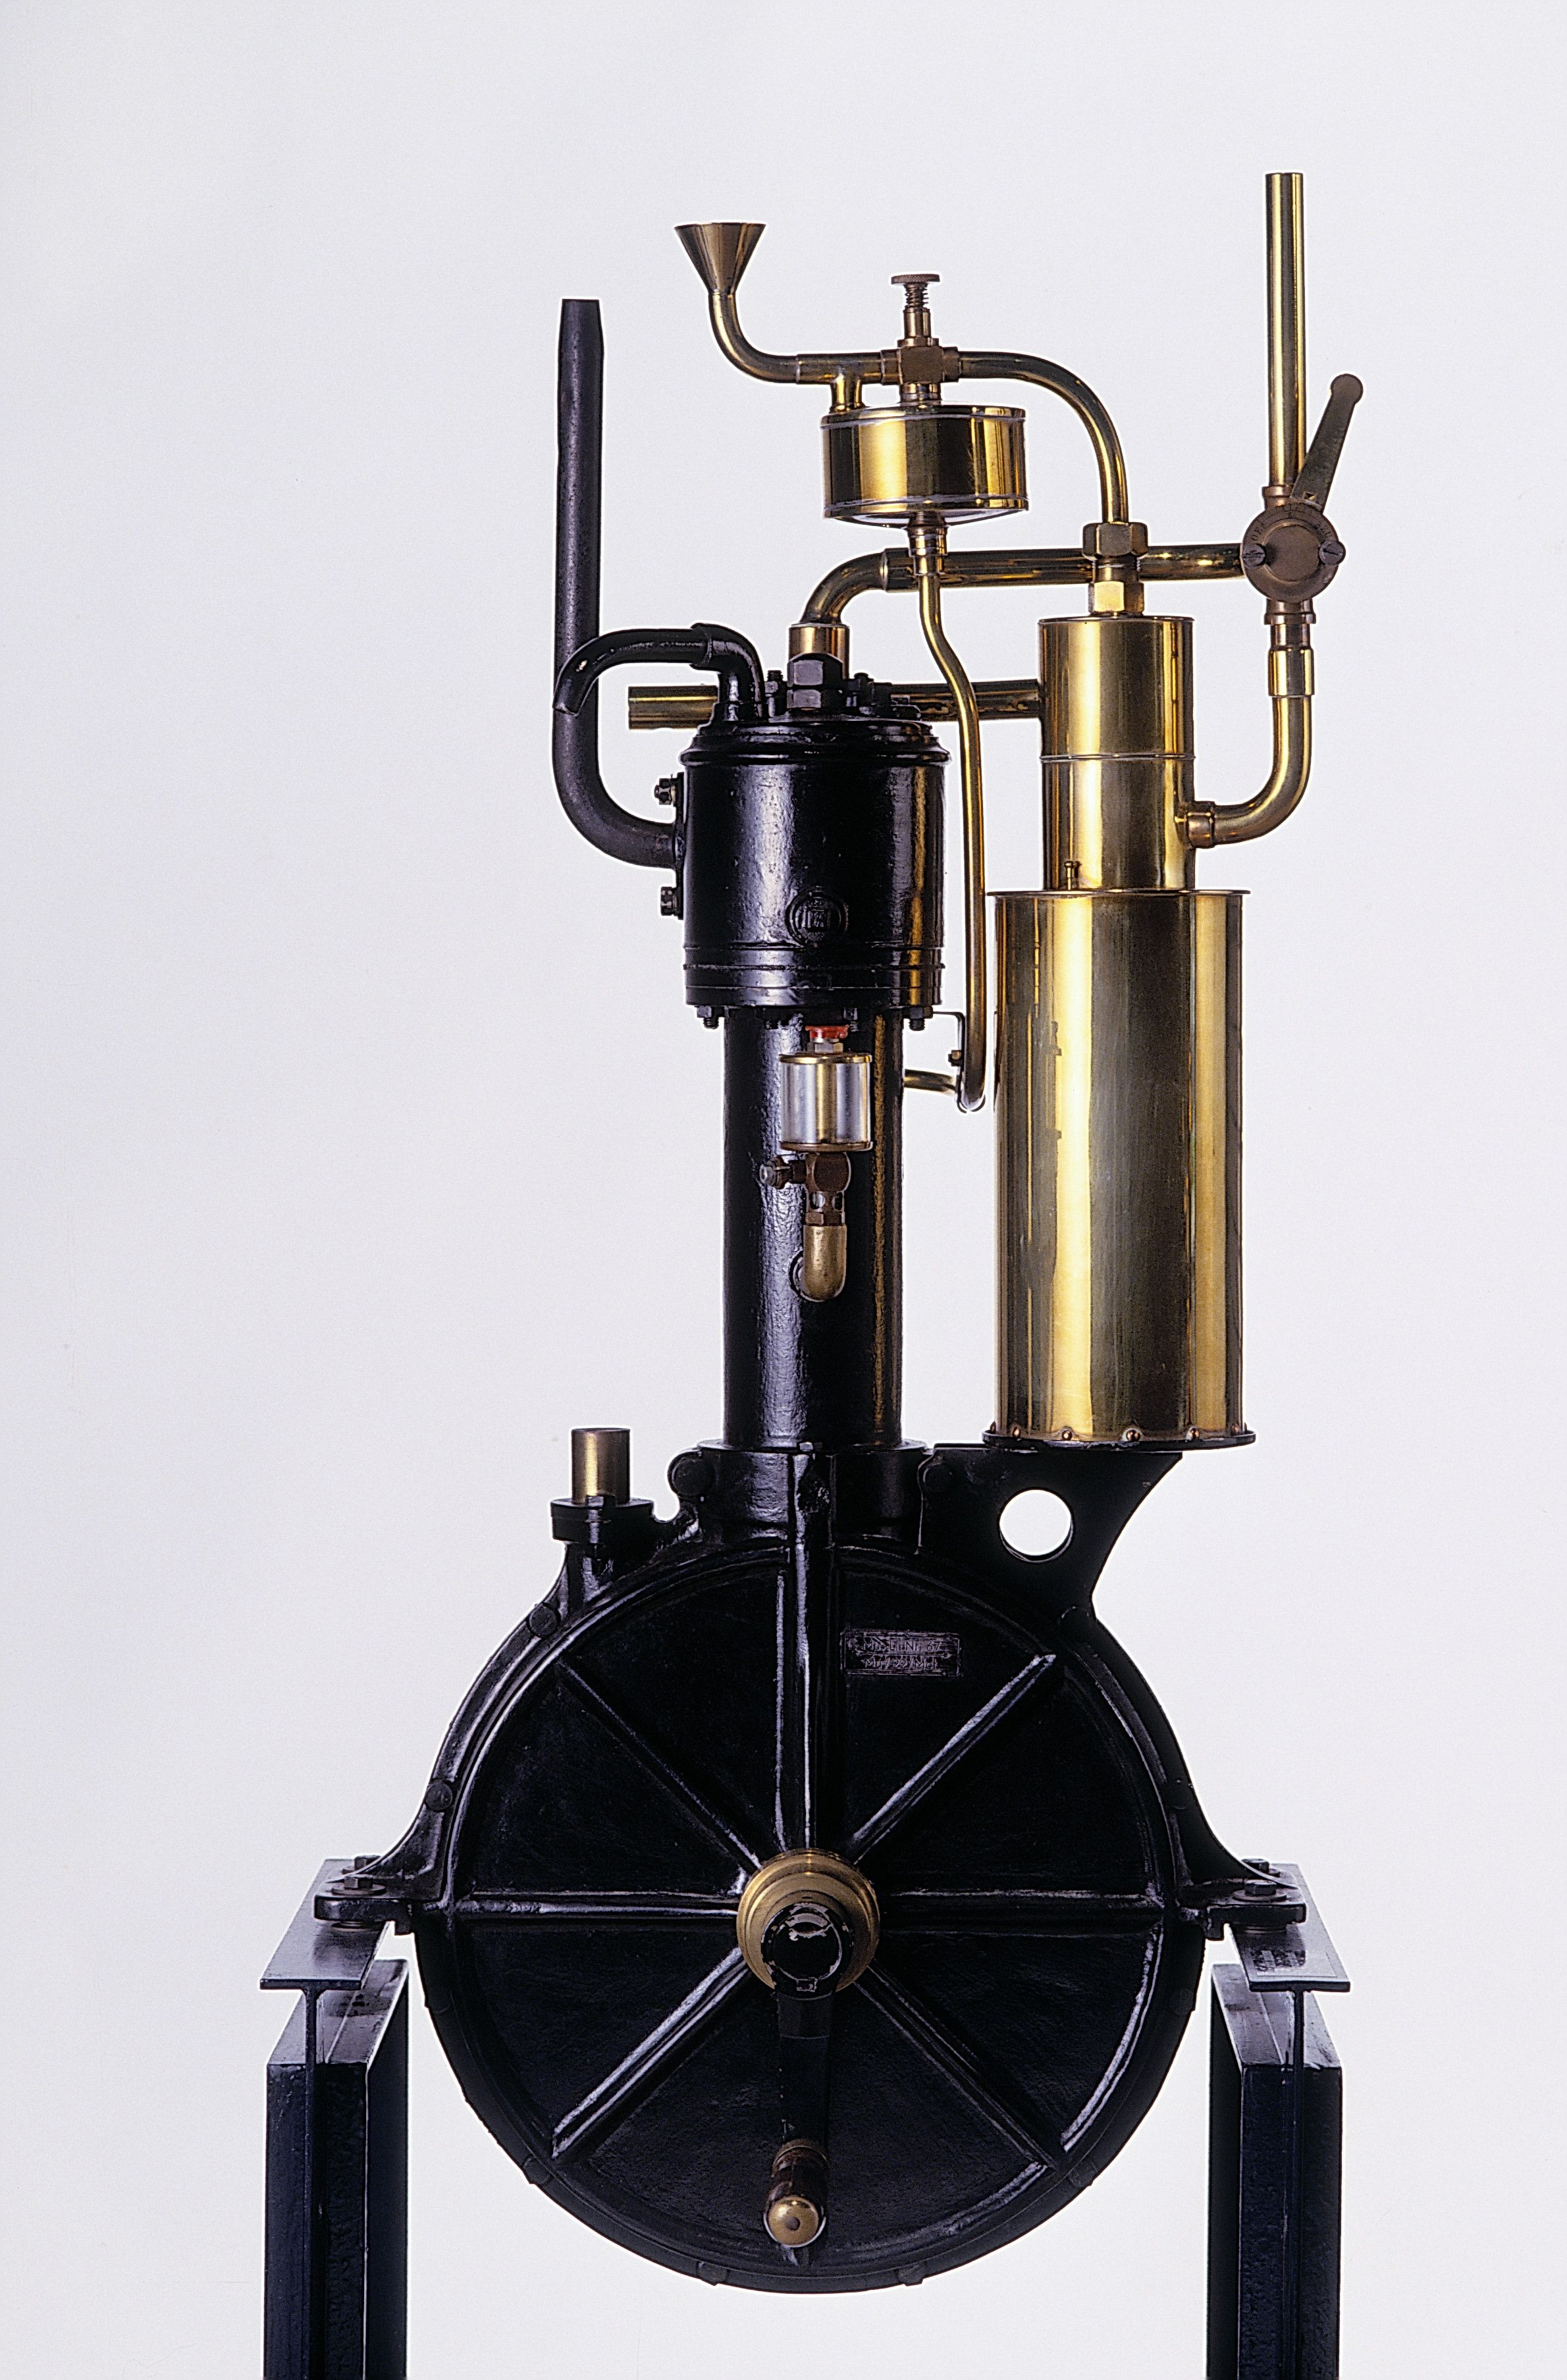 Basic Invention developed by Gottlieb Daimler and Wilhelm Maybach ...